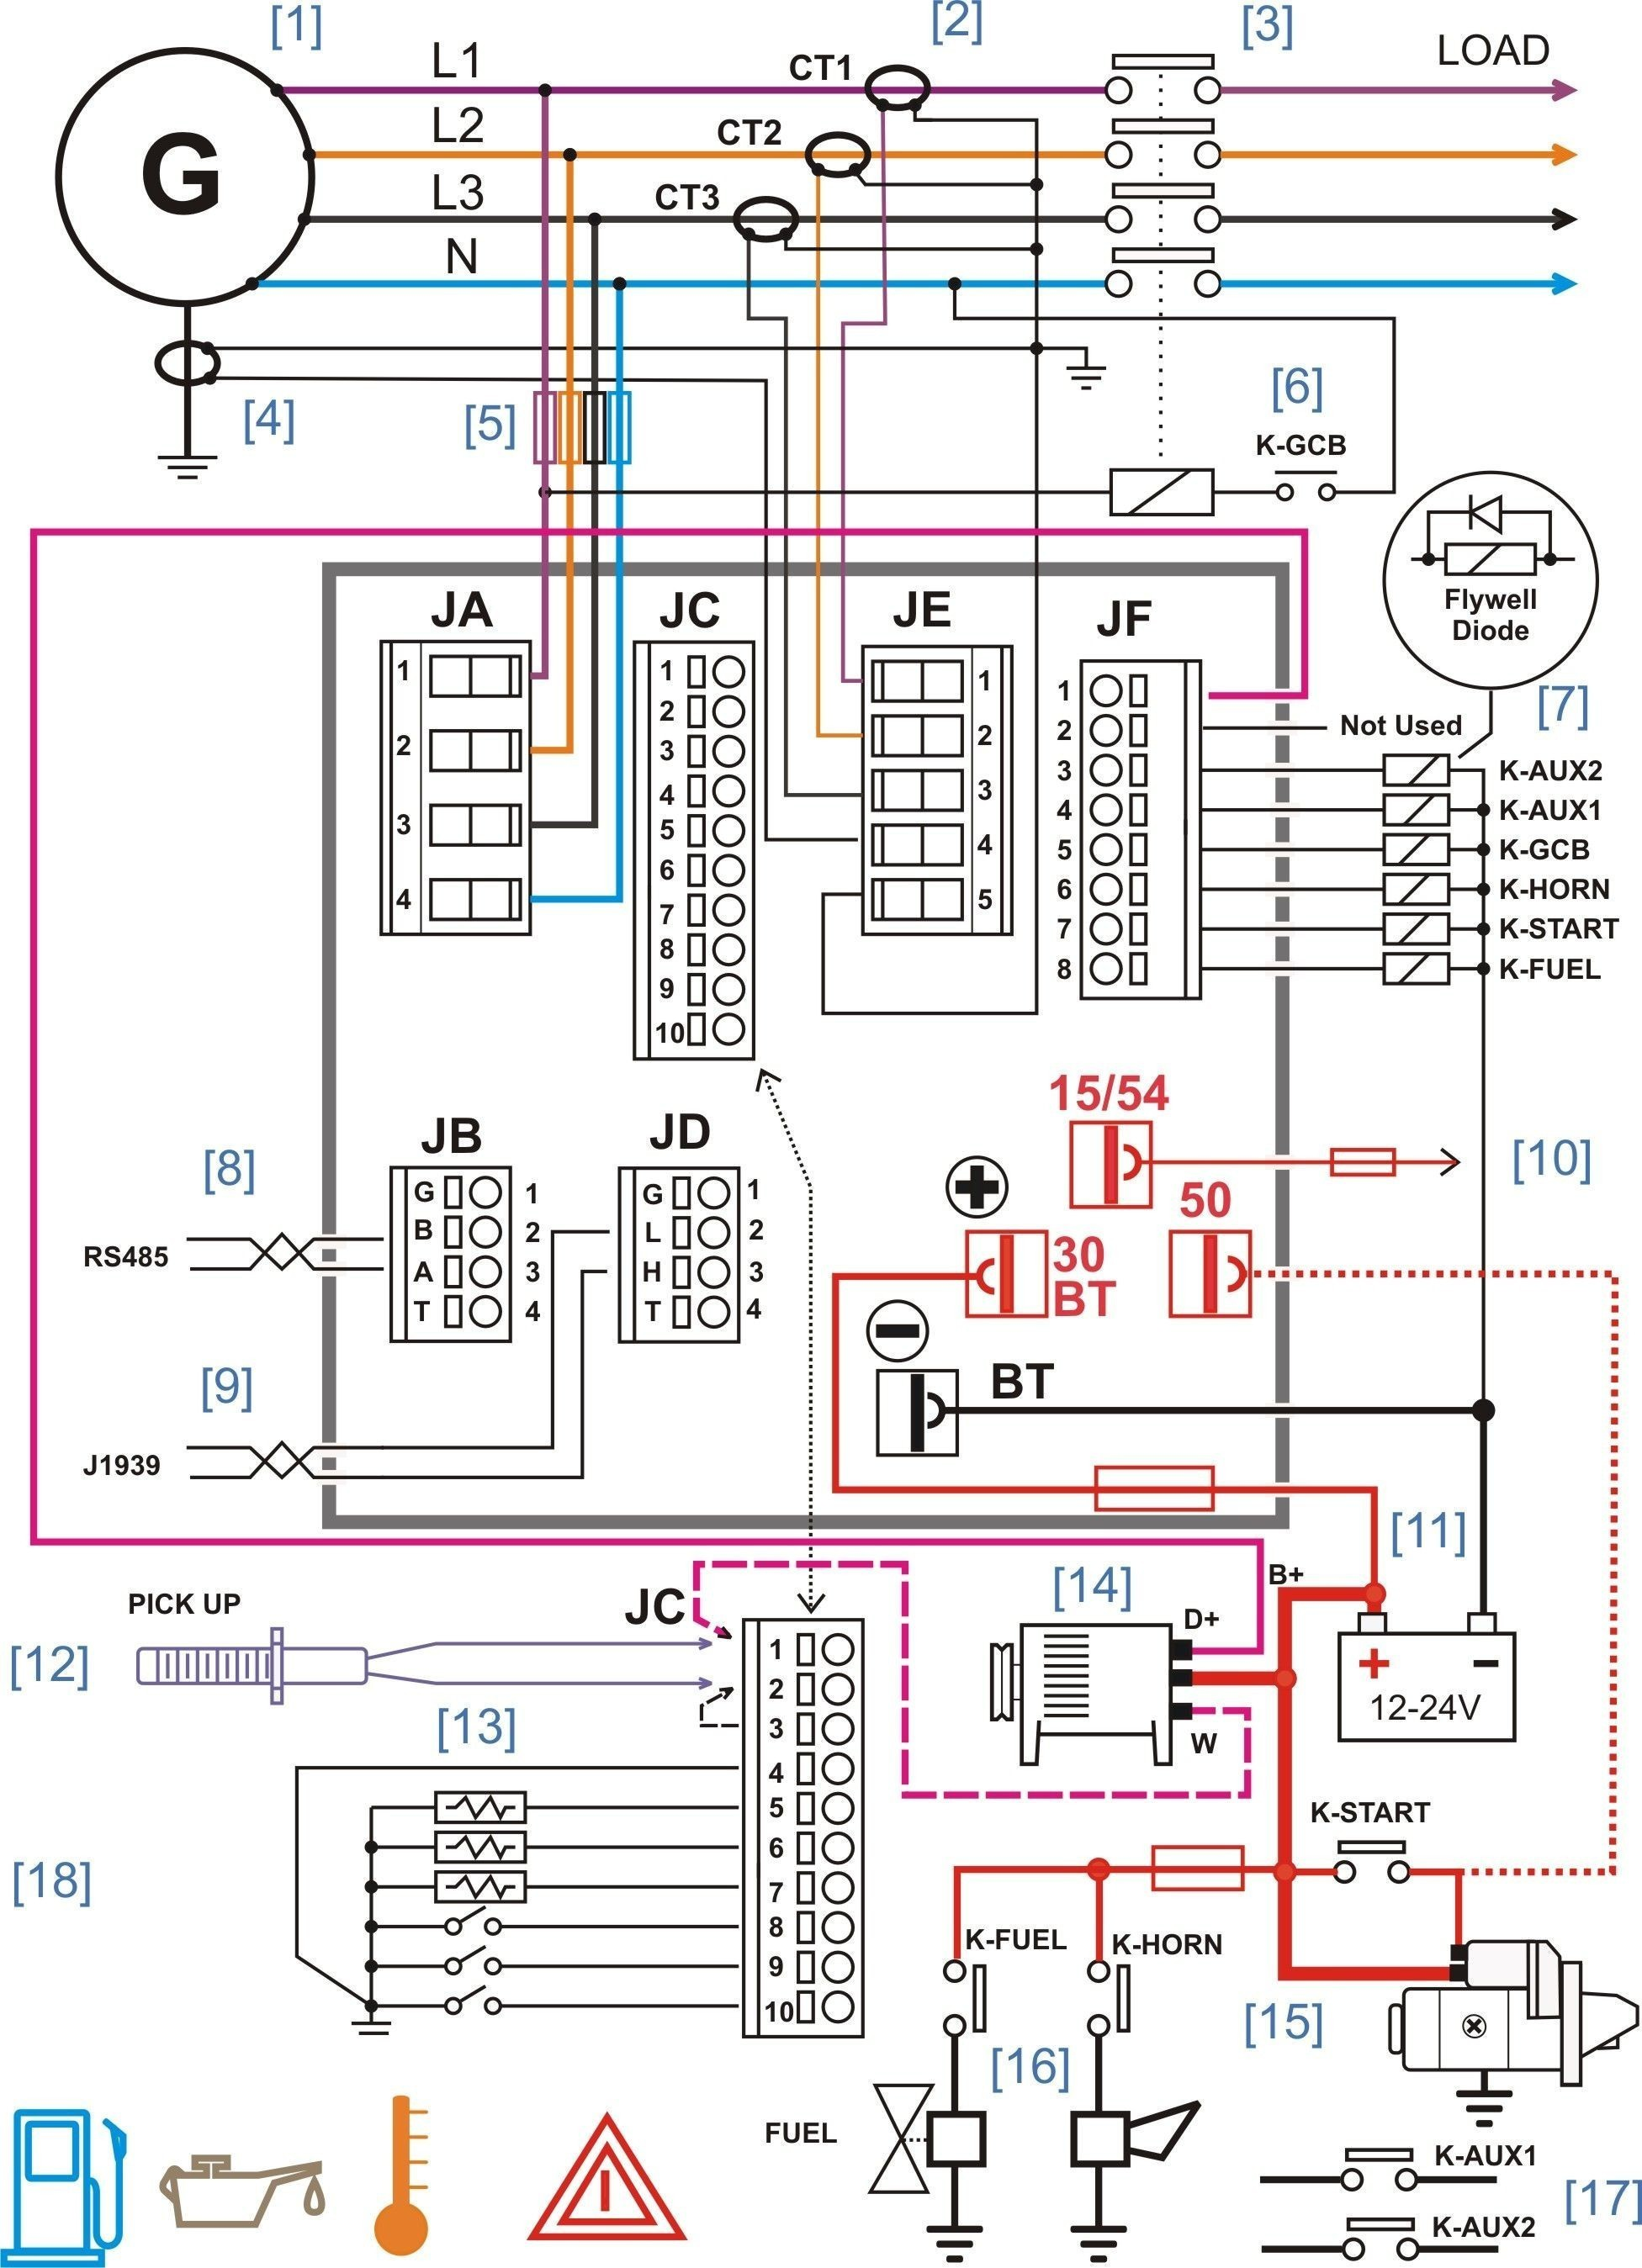 3208 cat engine parts diagram cat 3208 turbo starts only ether 3208 cat engine parts diagram caterpillar alternator wiring diagram opinions about wiring diagram • of 3208